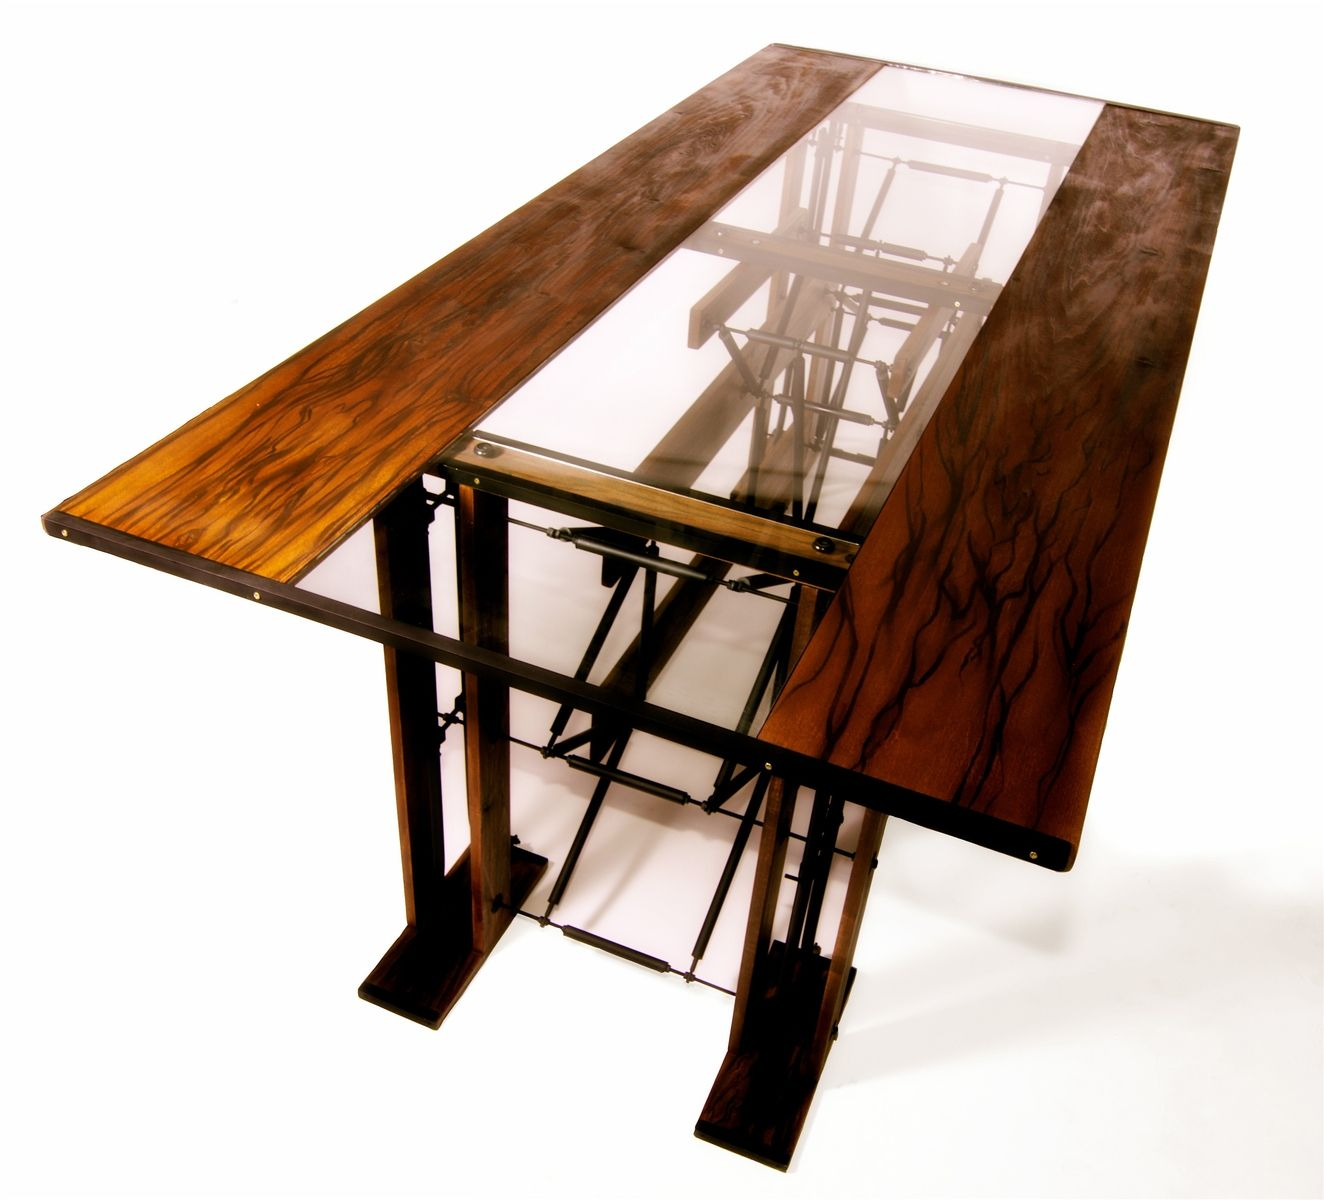 Hand made custom contemporary industrial eclectic dining for Dining table design modern